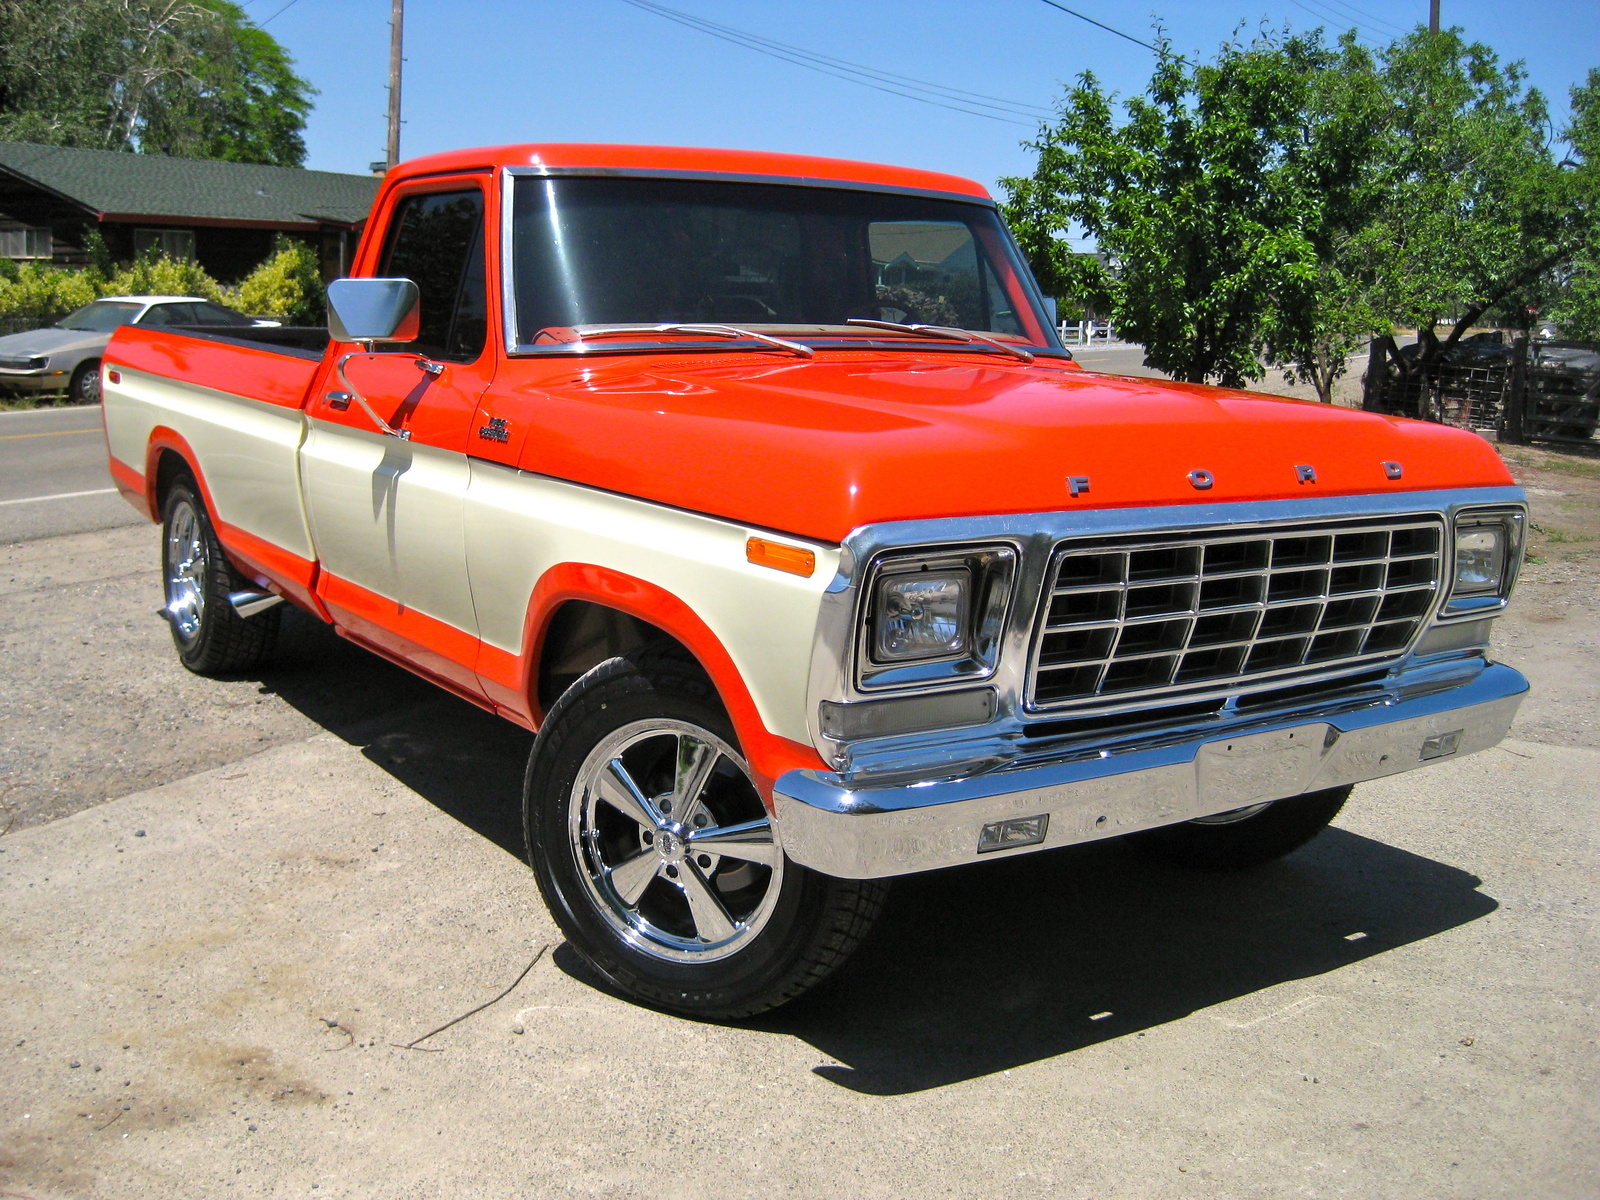 1978 Ford F-150 - Pictures